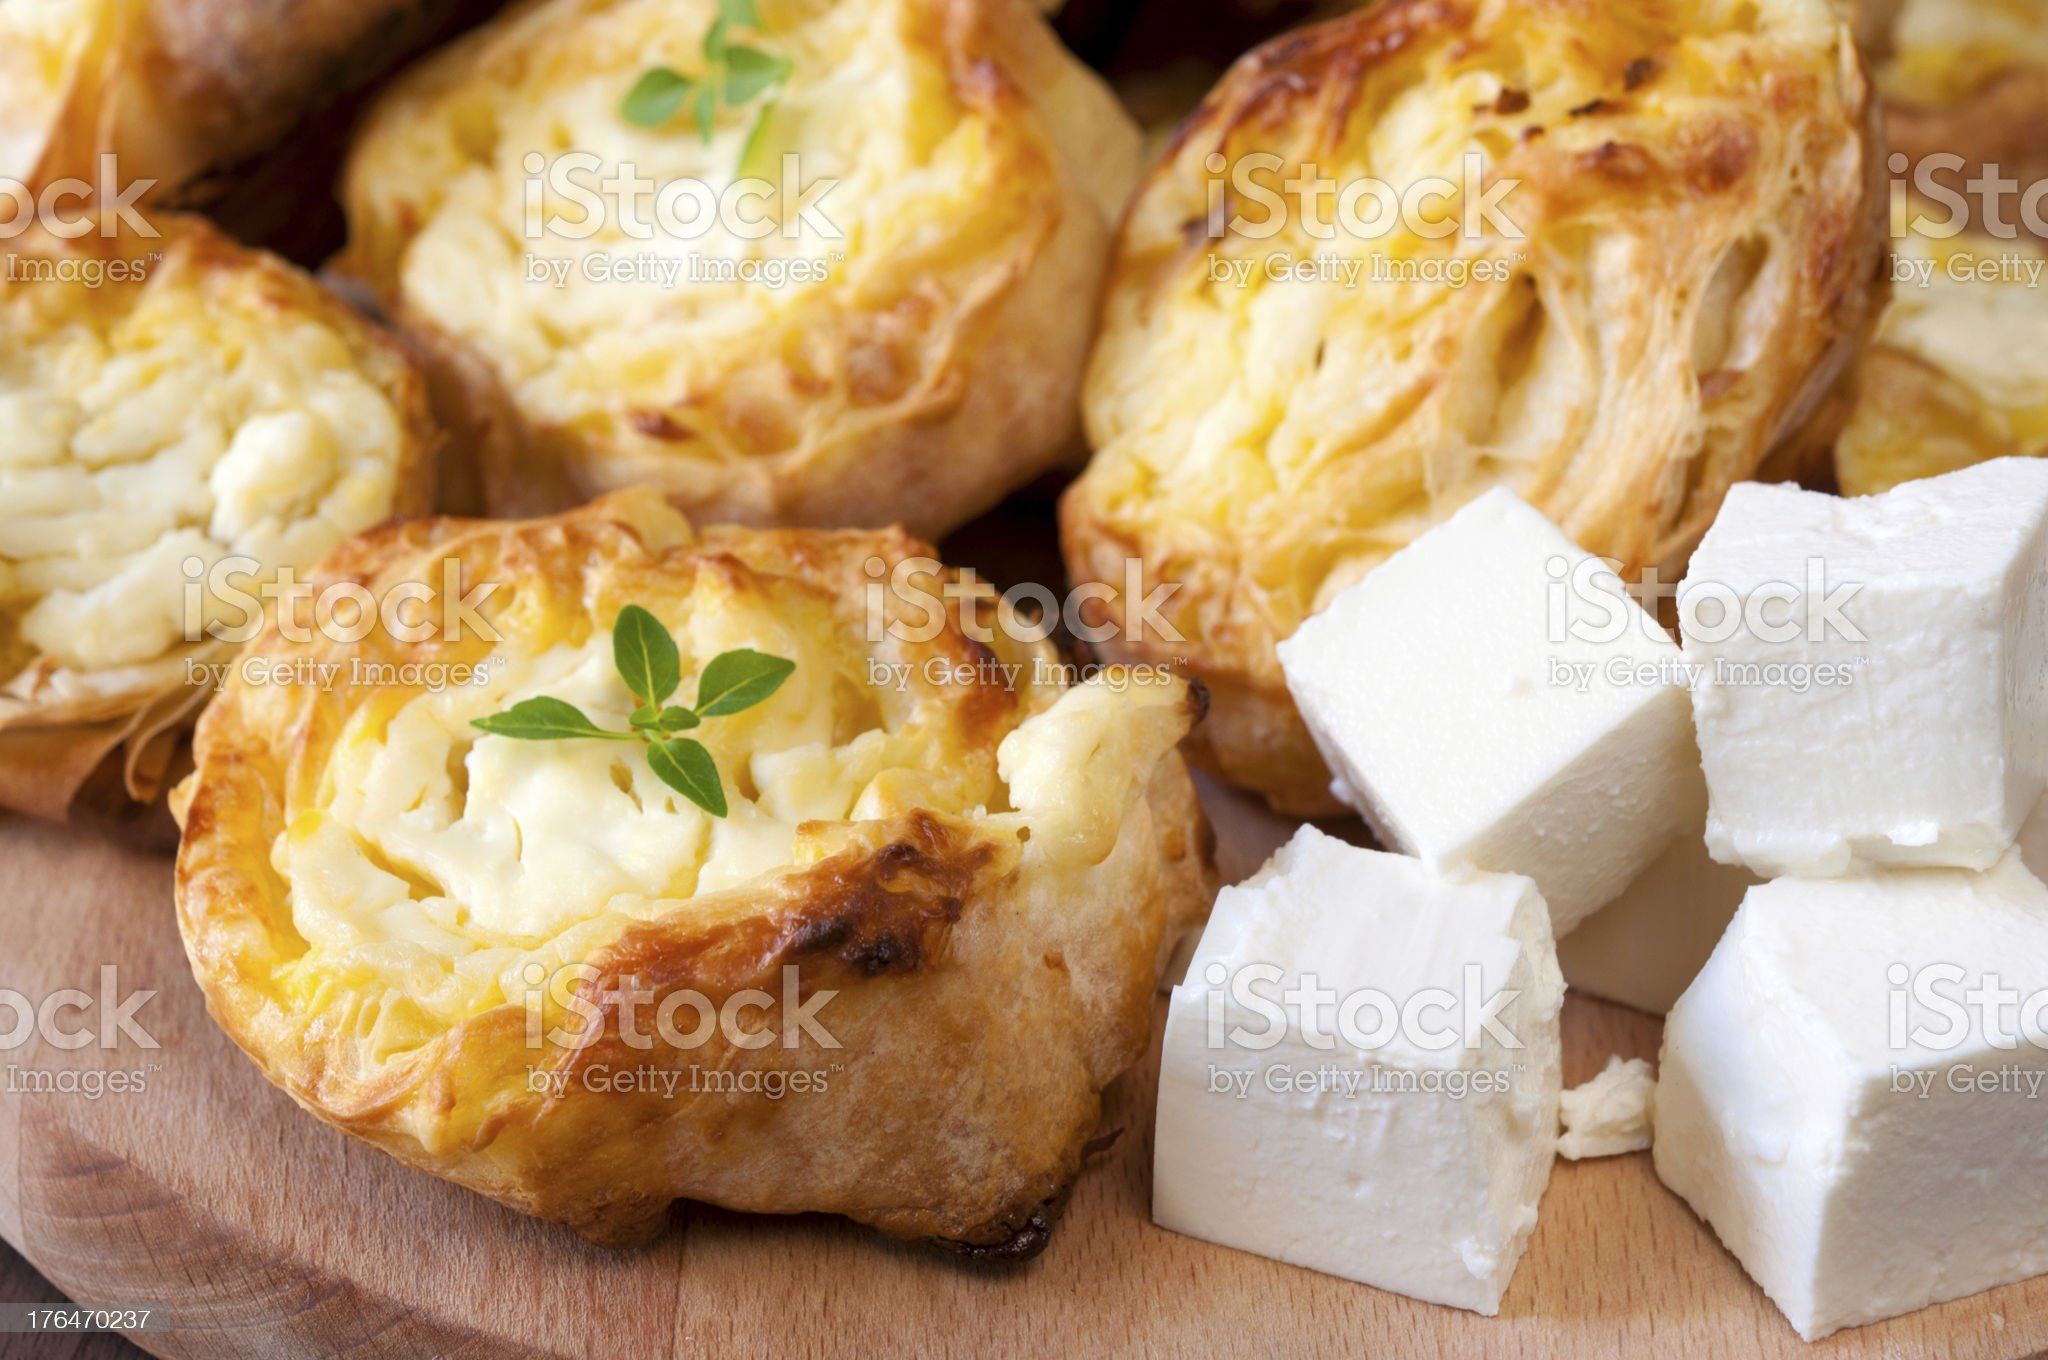 Feta cheese and pastry royalty-free stock photo